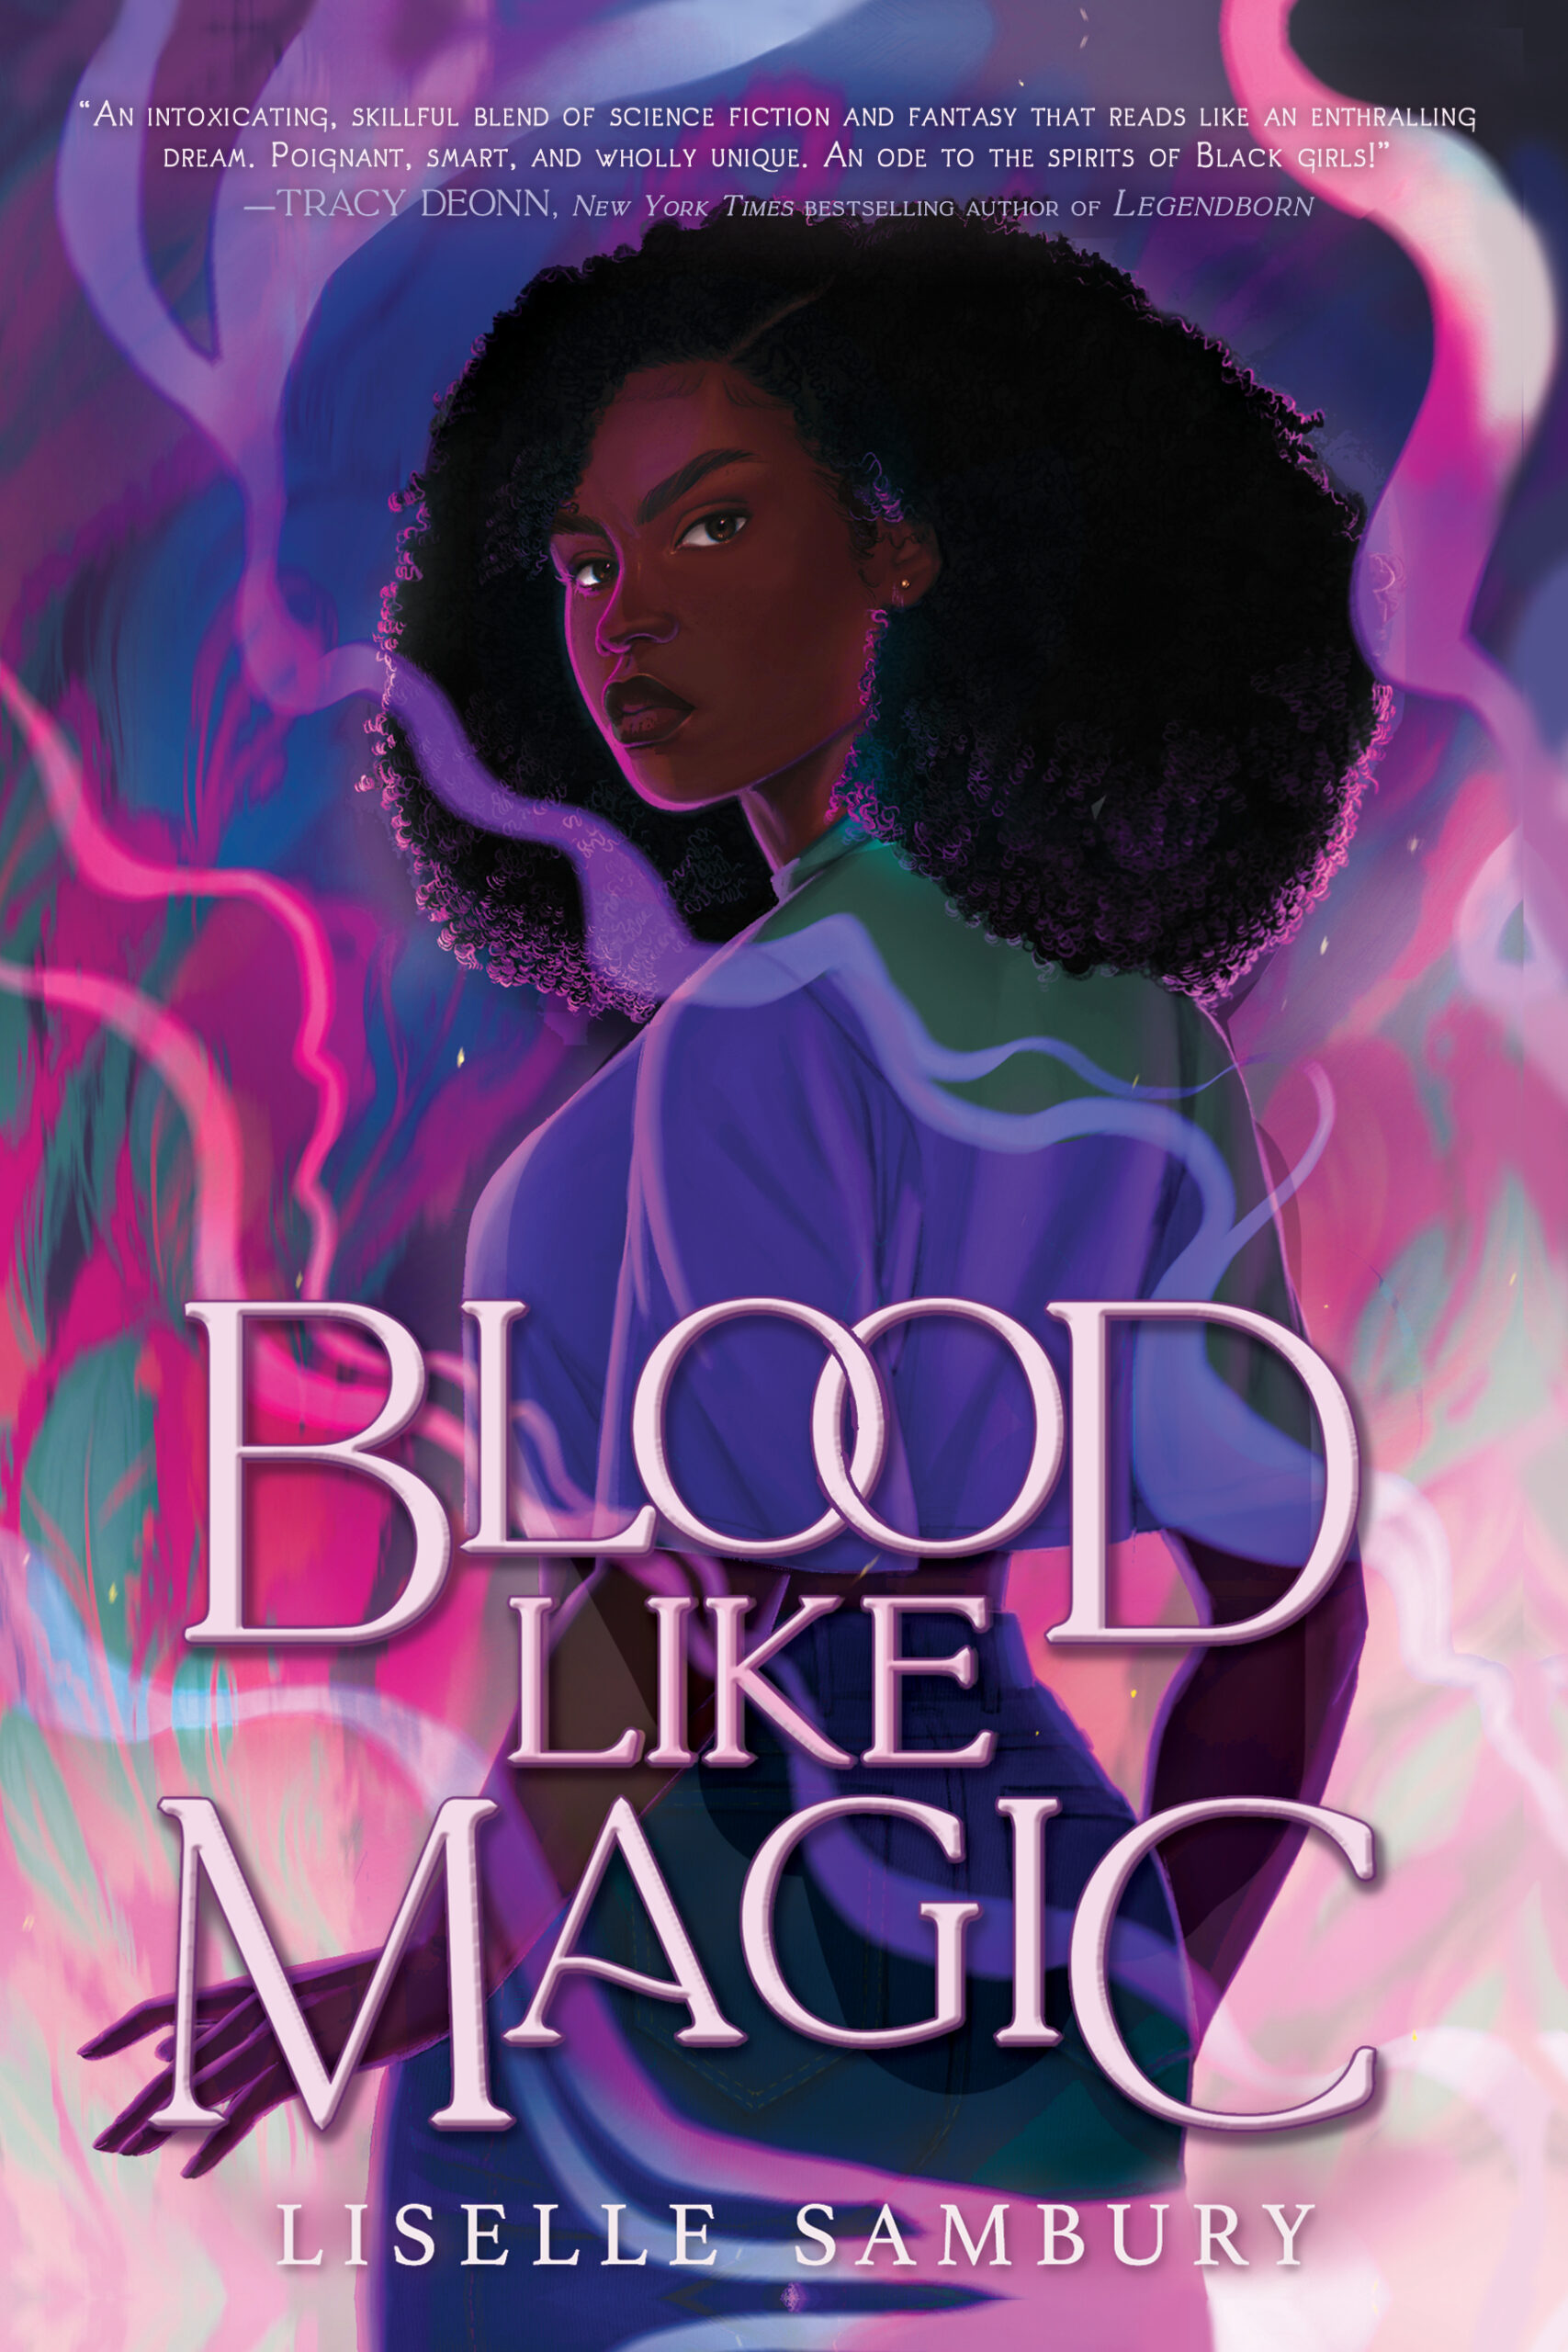 Cover of Blood Like Magic, Black girl with natural hair out, crop top and jeans, and purple and pink smoke, says Blood Like Magic by Liselle Sambury with blurb from Tracy Deonn